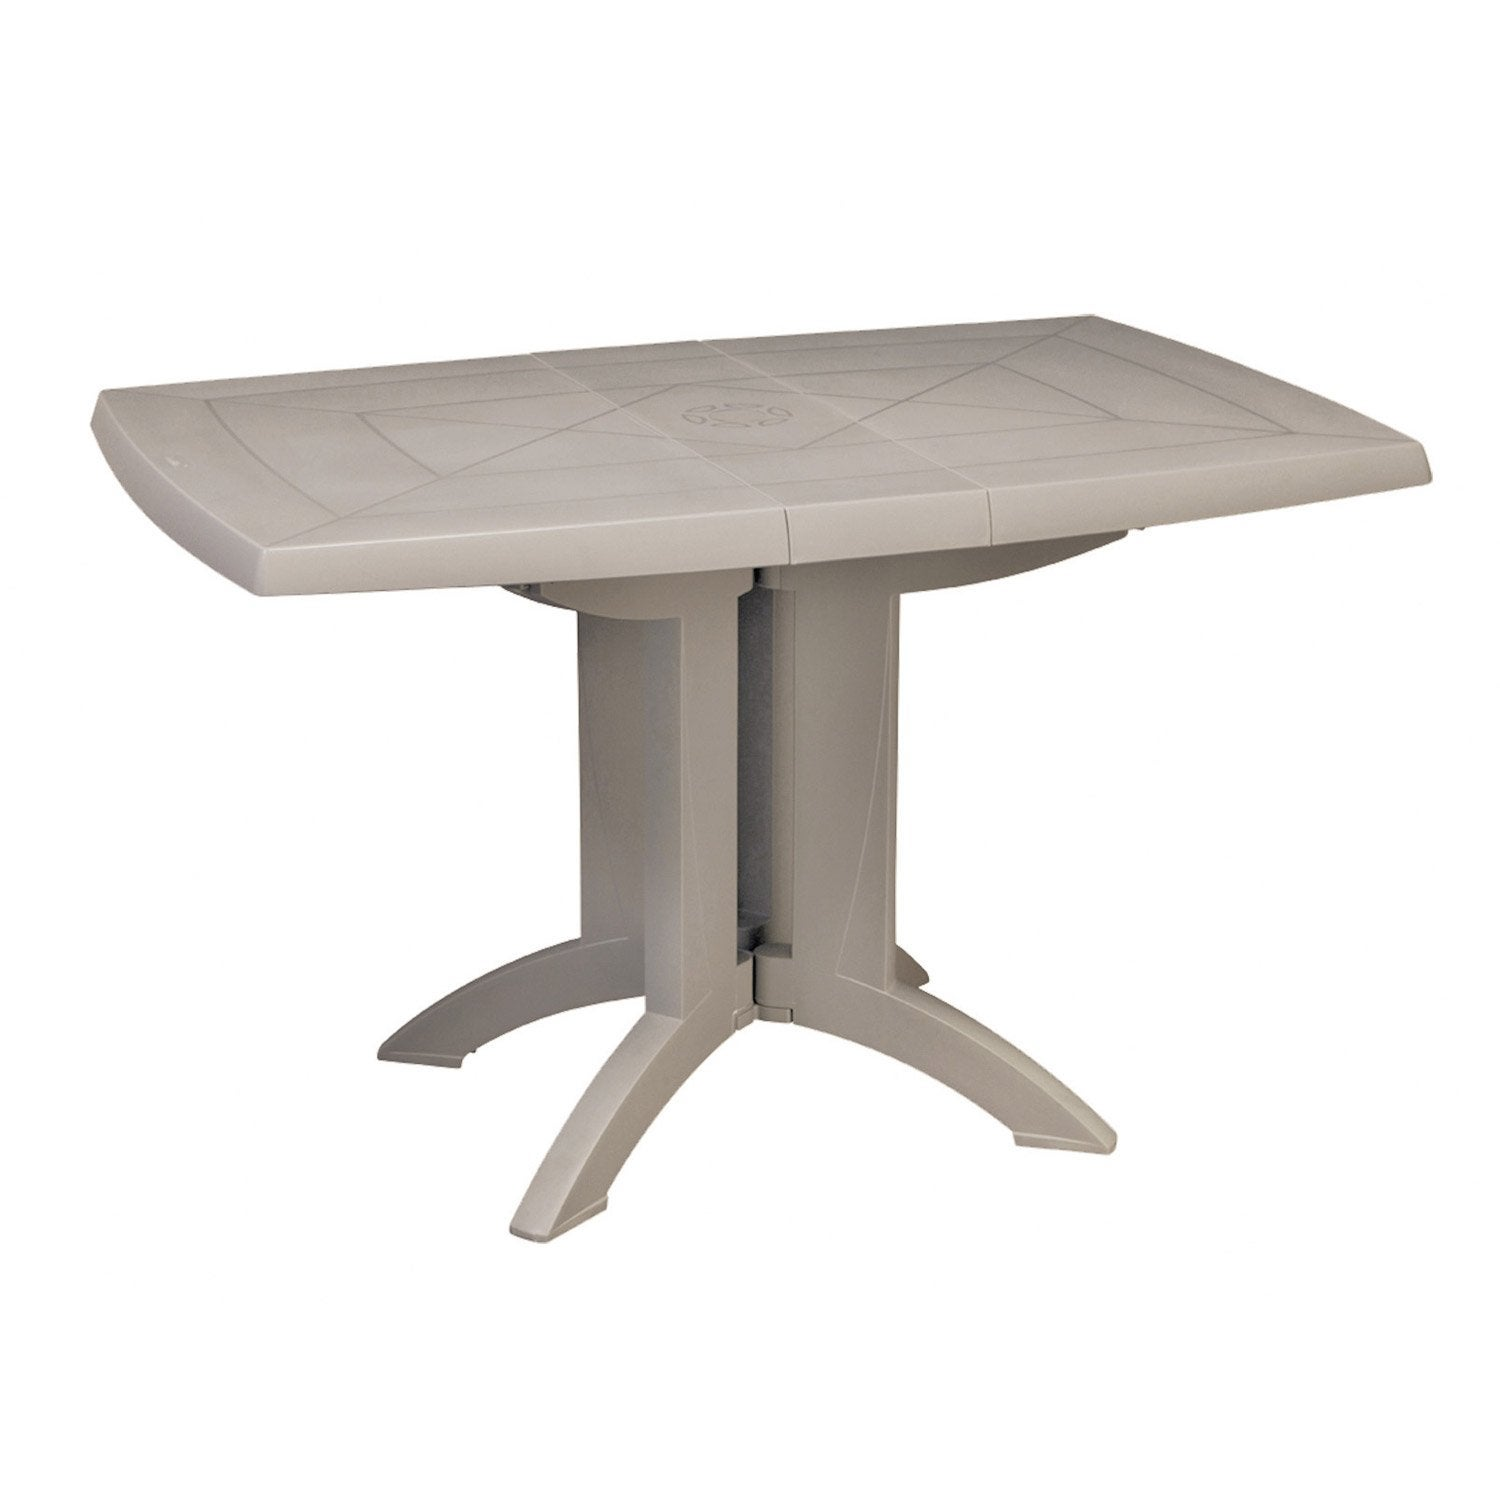 Table jardin 4 personnes maison design - Table pliante de jardin ...